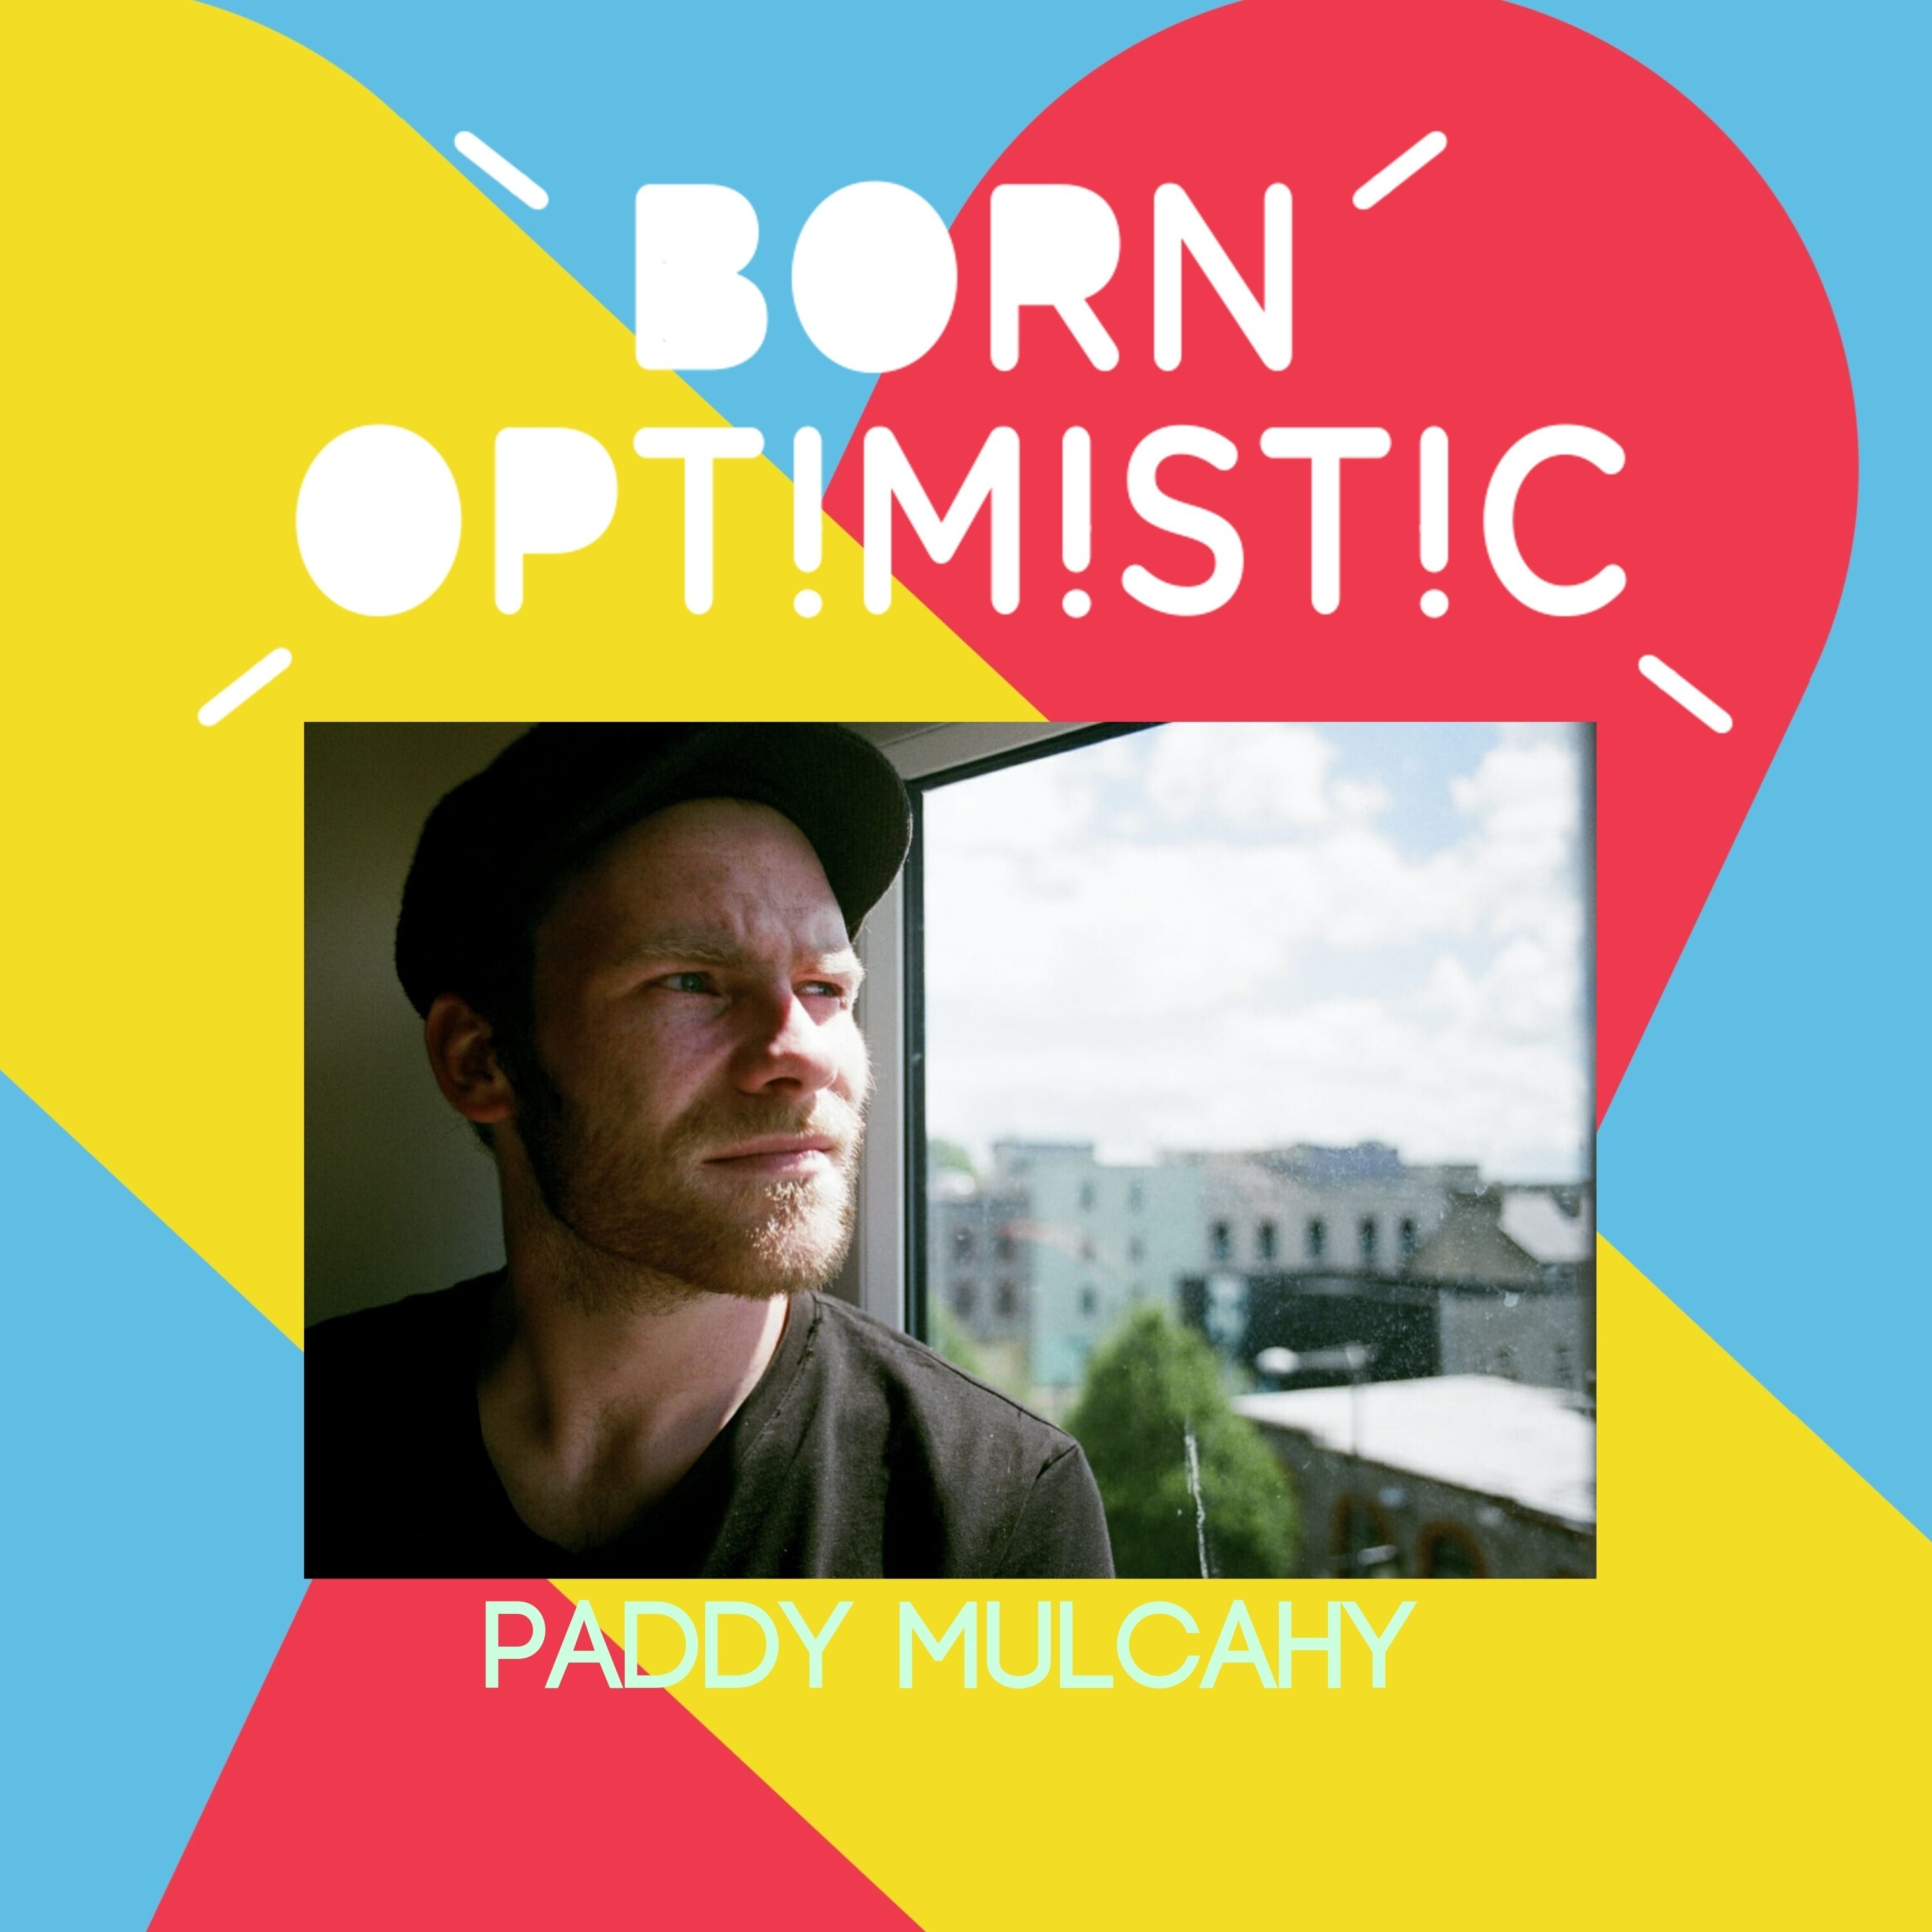 Modern classical and electronic artist Paddy Mulcahy in conversation to herald his brilliant second album 'How To Disappear'. Paddy's full of the joys that music brings and shares how he got to where he is.